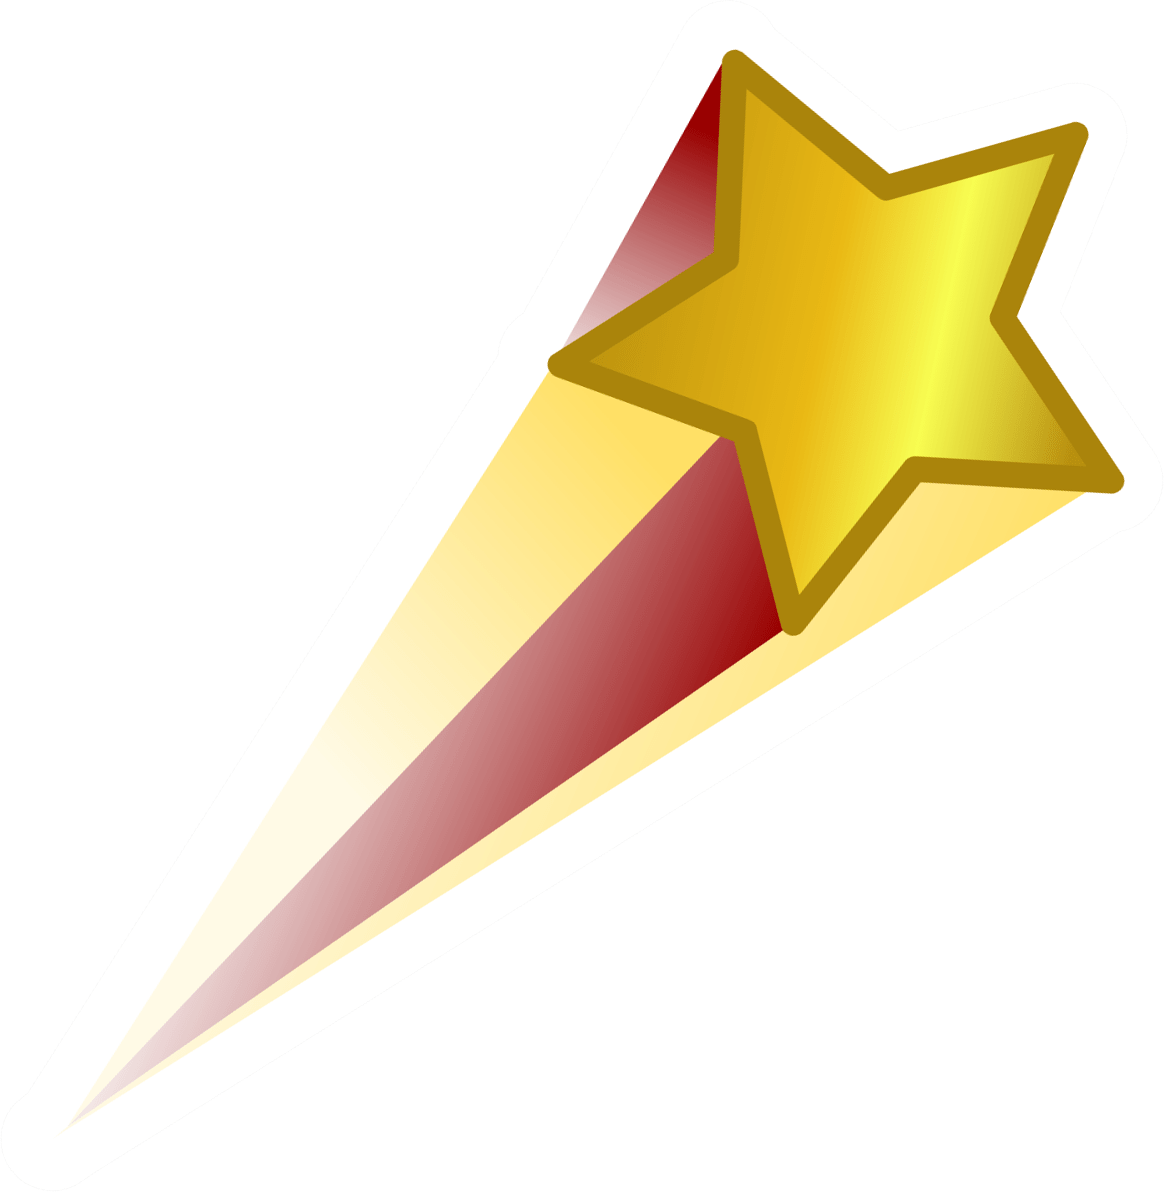 Transparent png images page. Gold clipart shooting star